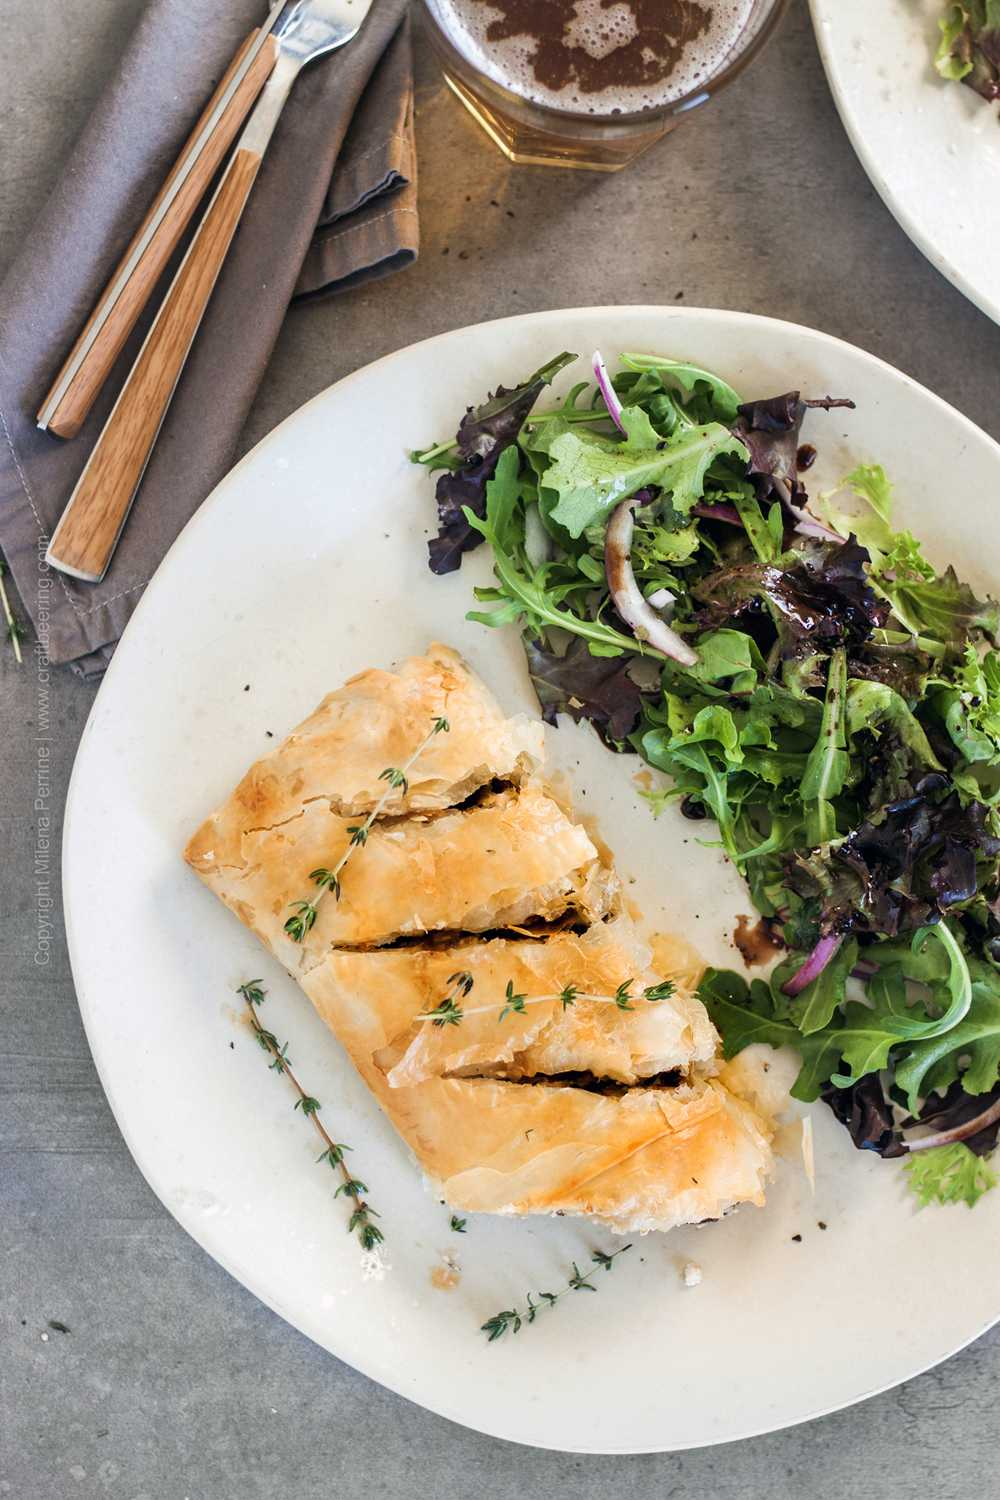 Plated mushroom strudel with mixed greens salad with balsamic.